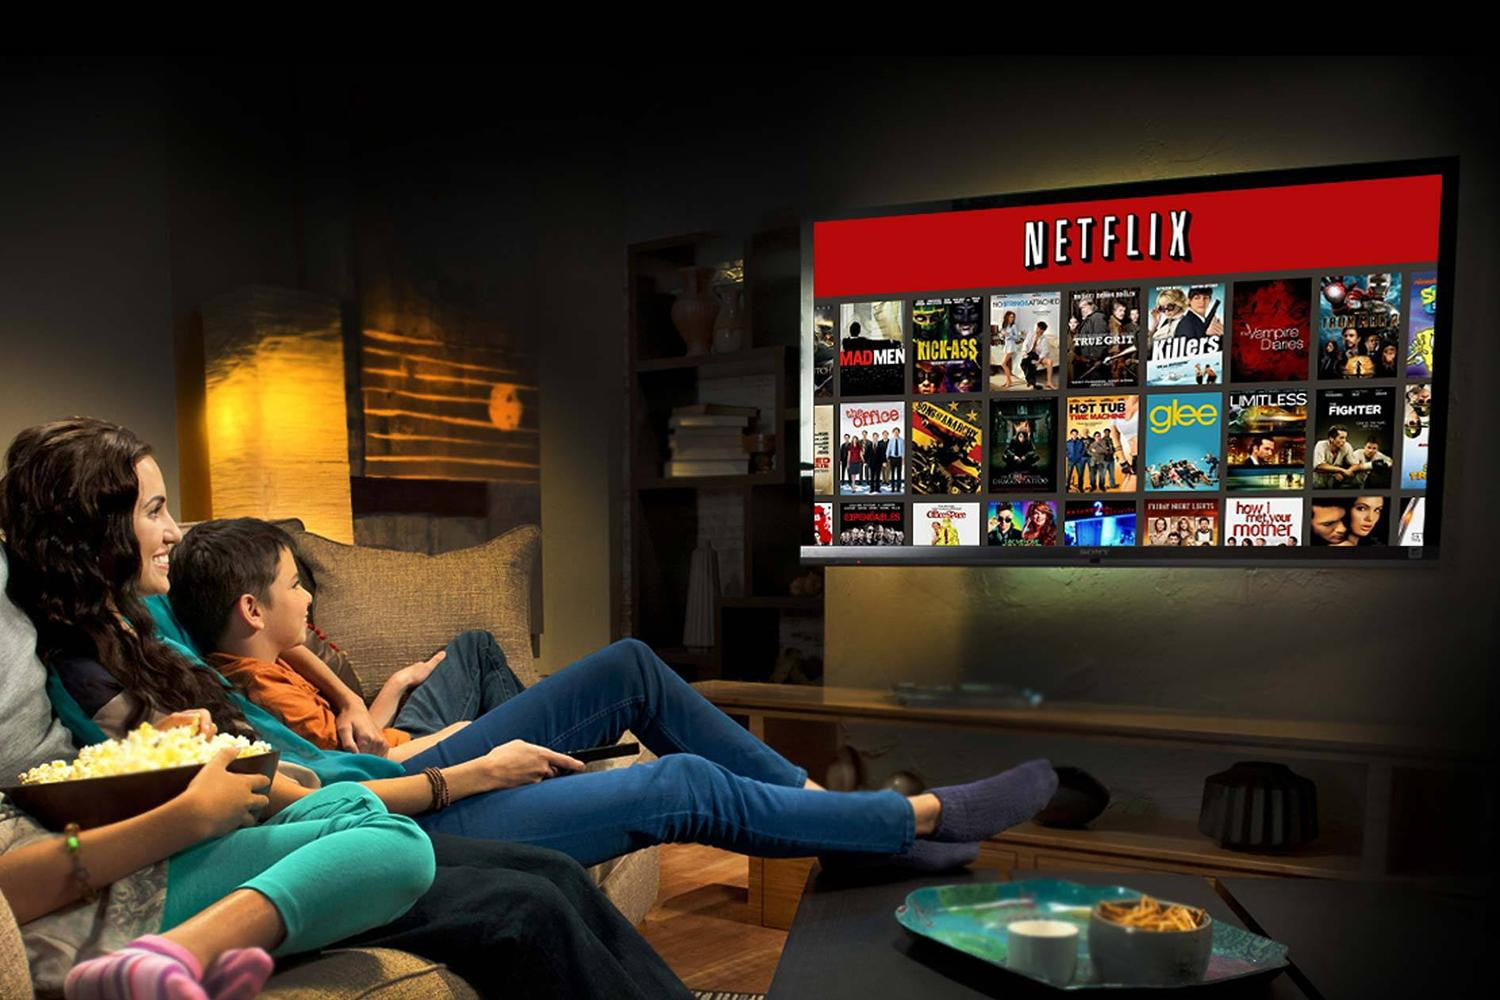 Netflix Stock Jumps On Big Increase In New Subscribers